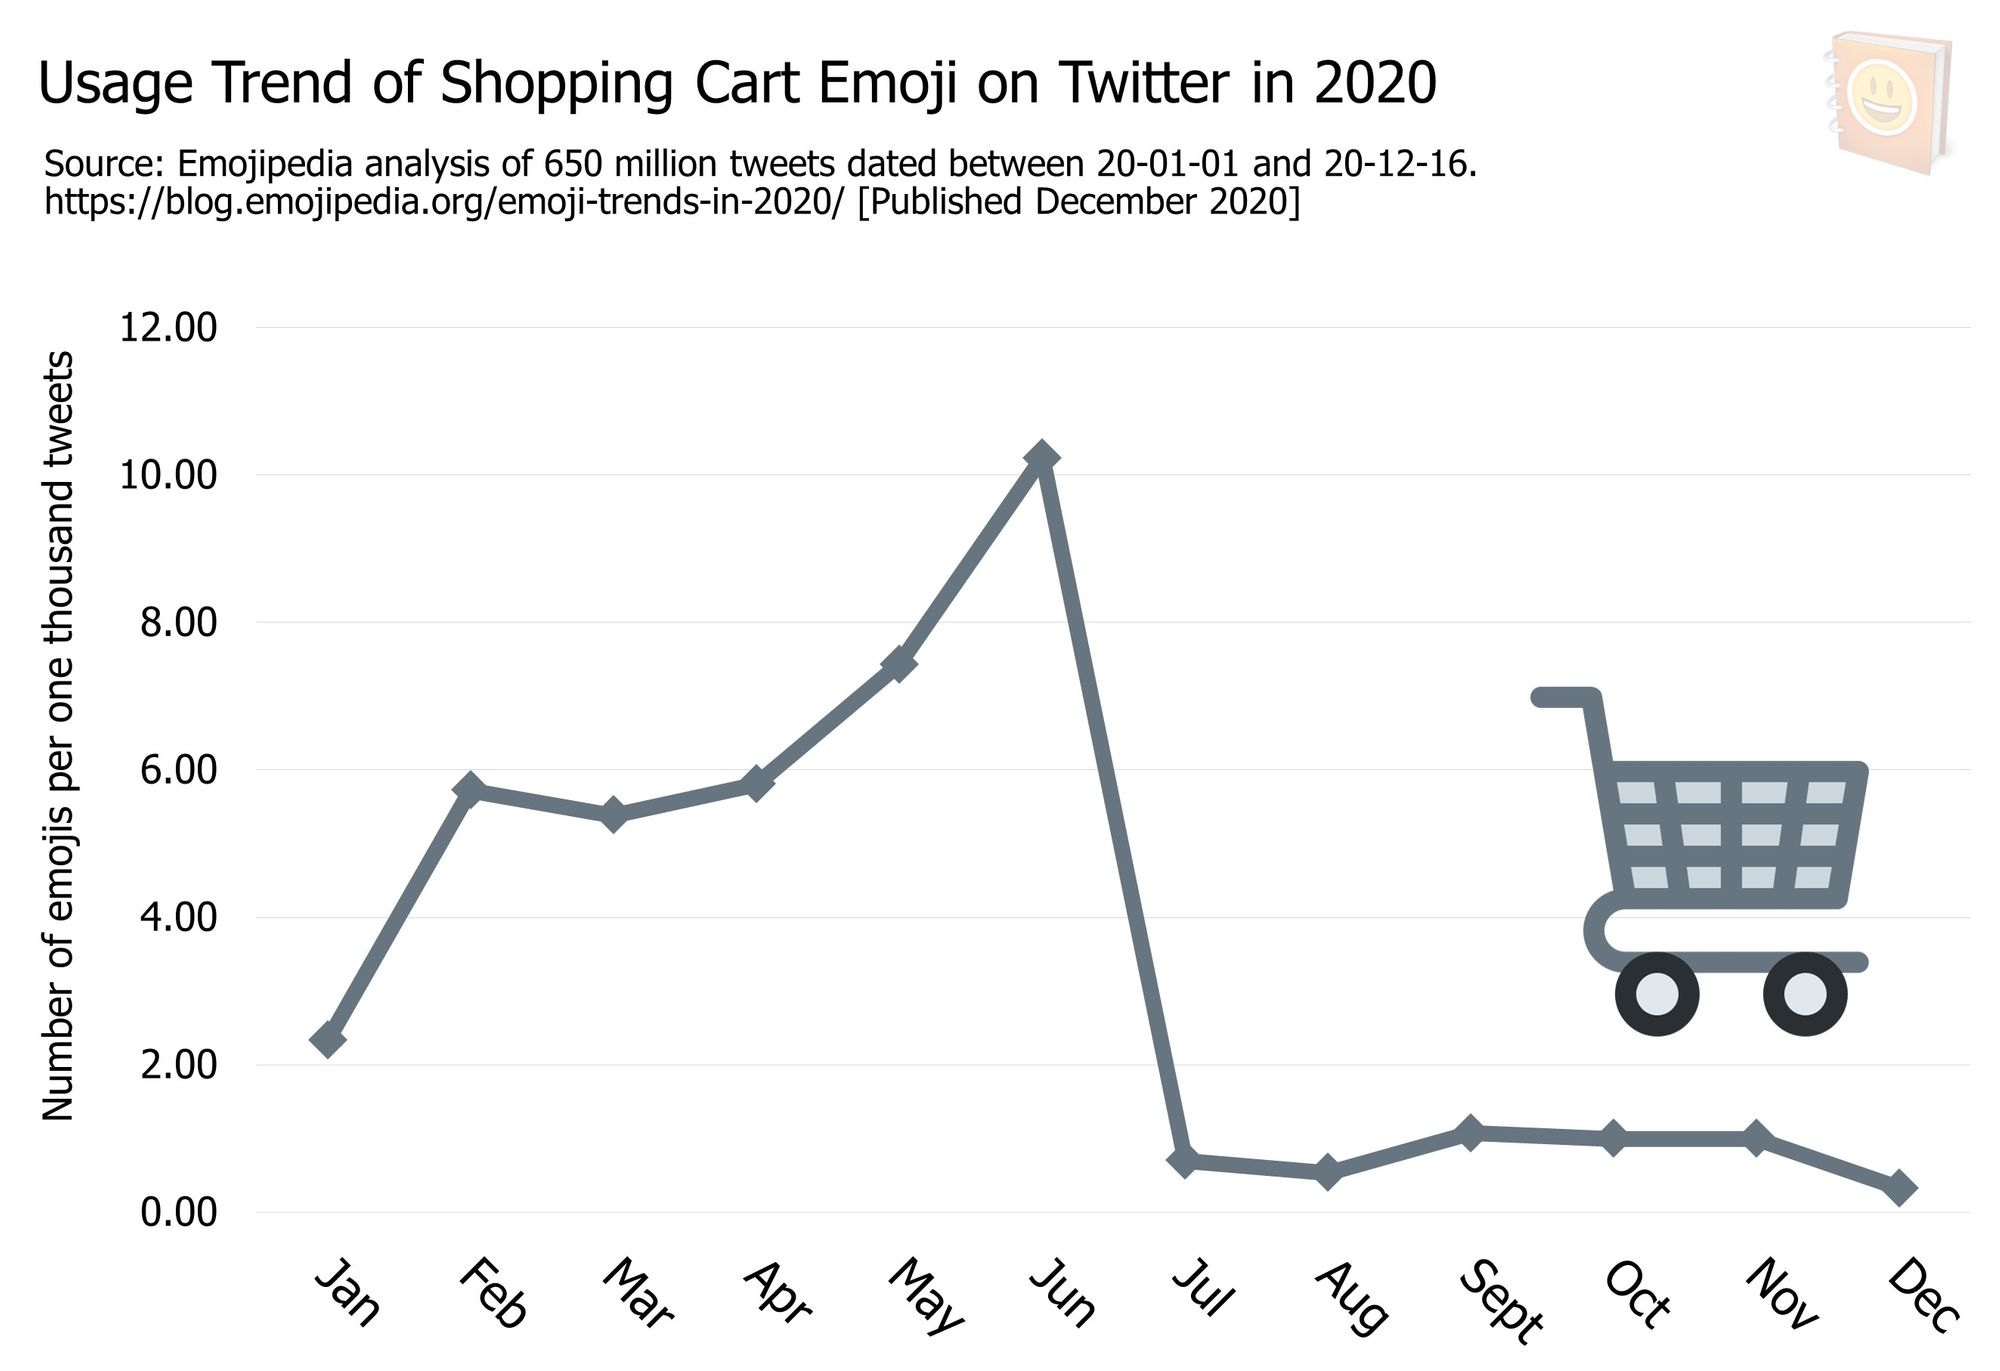 Emoji-Trends-In-2020---Usage-Trend-of-Shopping-Cart-Emoji-on-Twitter-in-2020